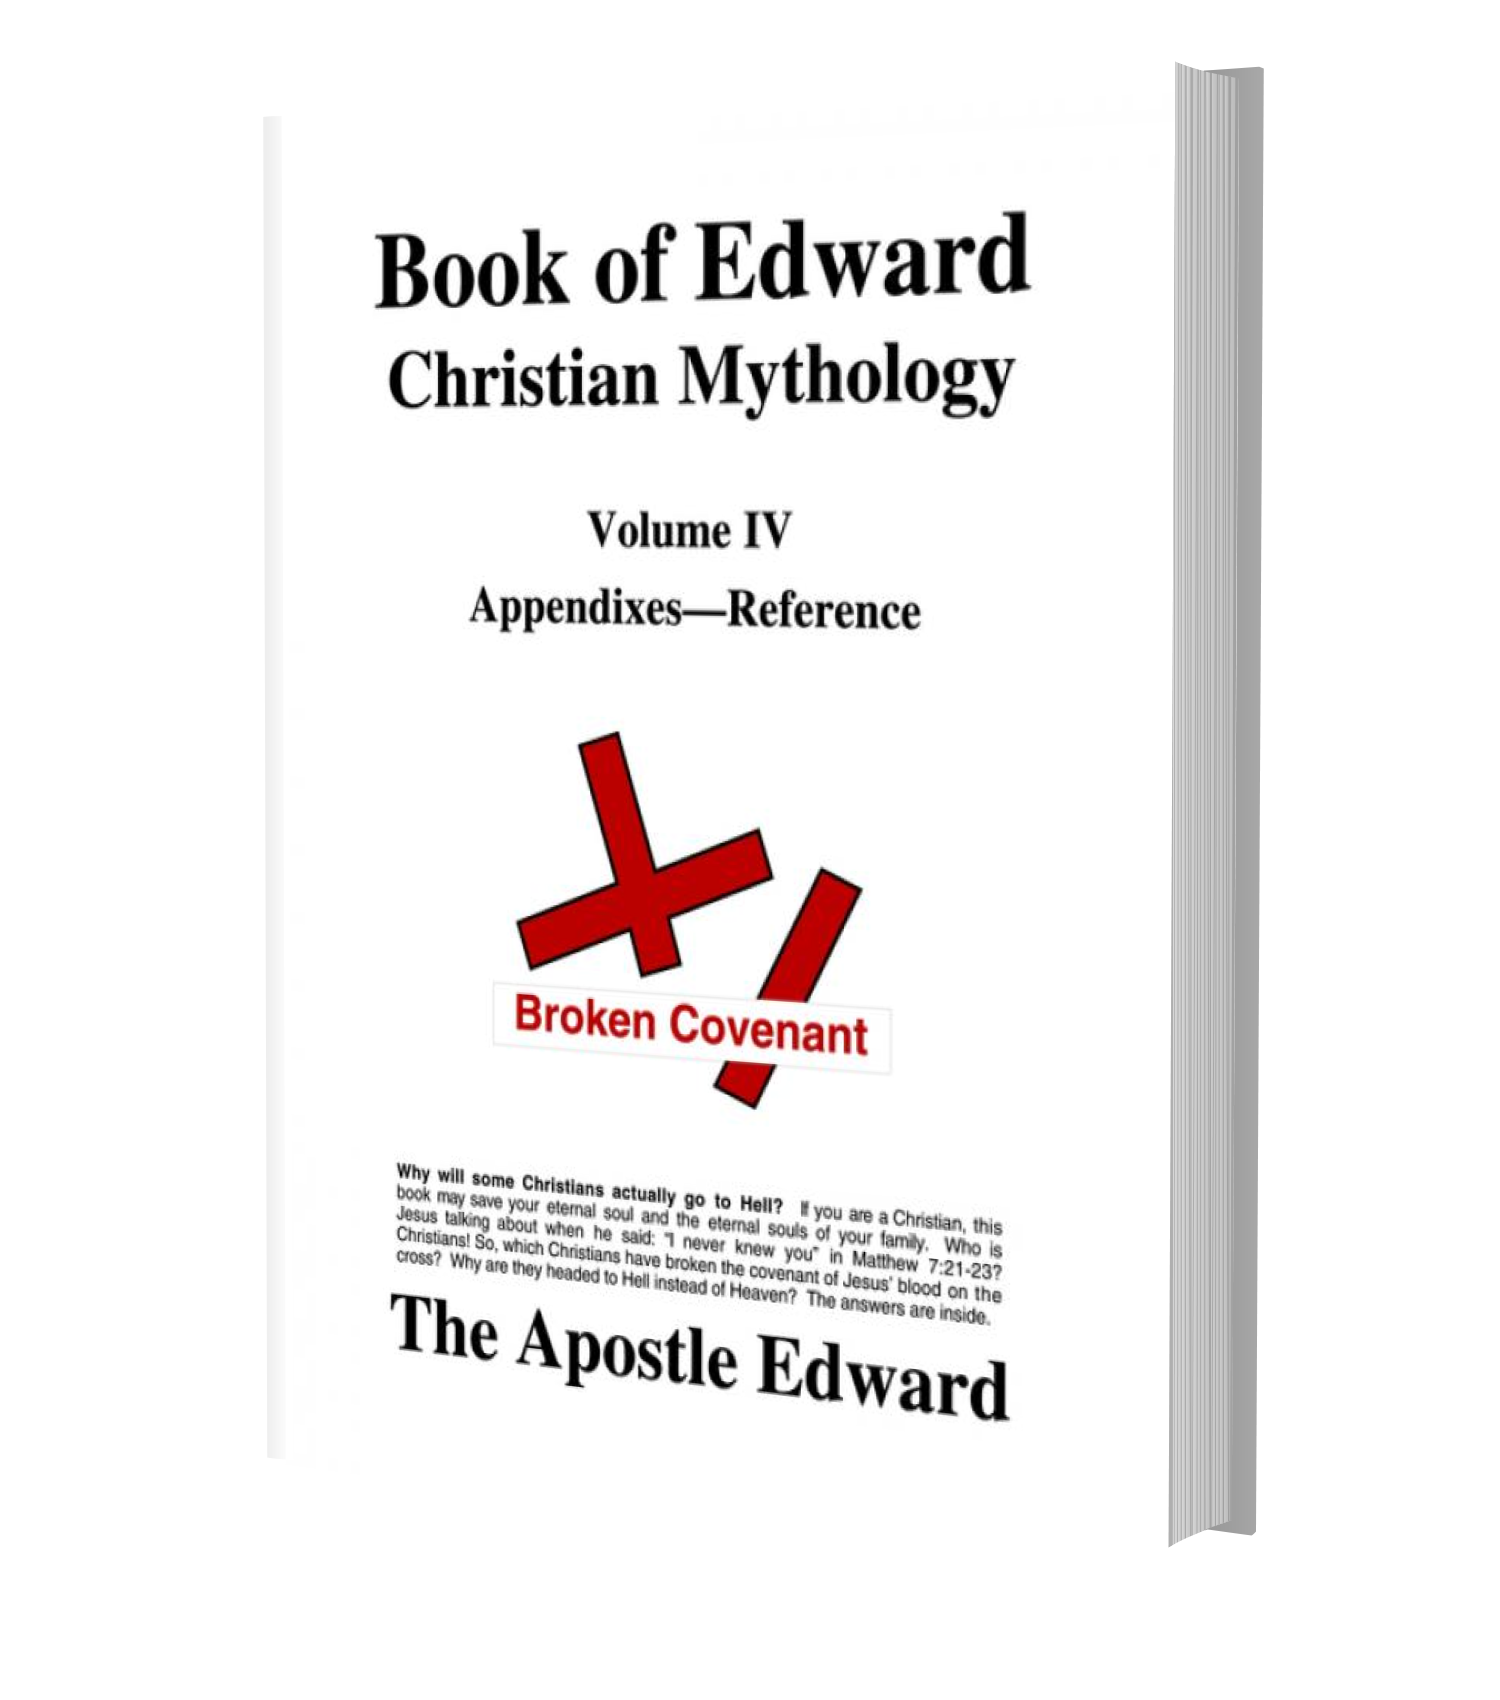 Image of Apostle Edward's Book of Edward Volume IV